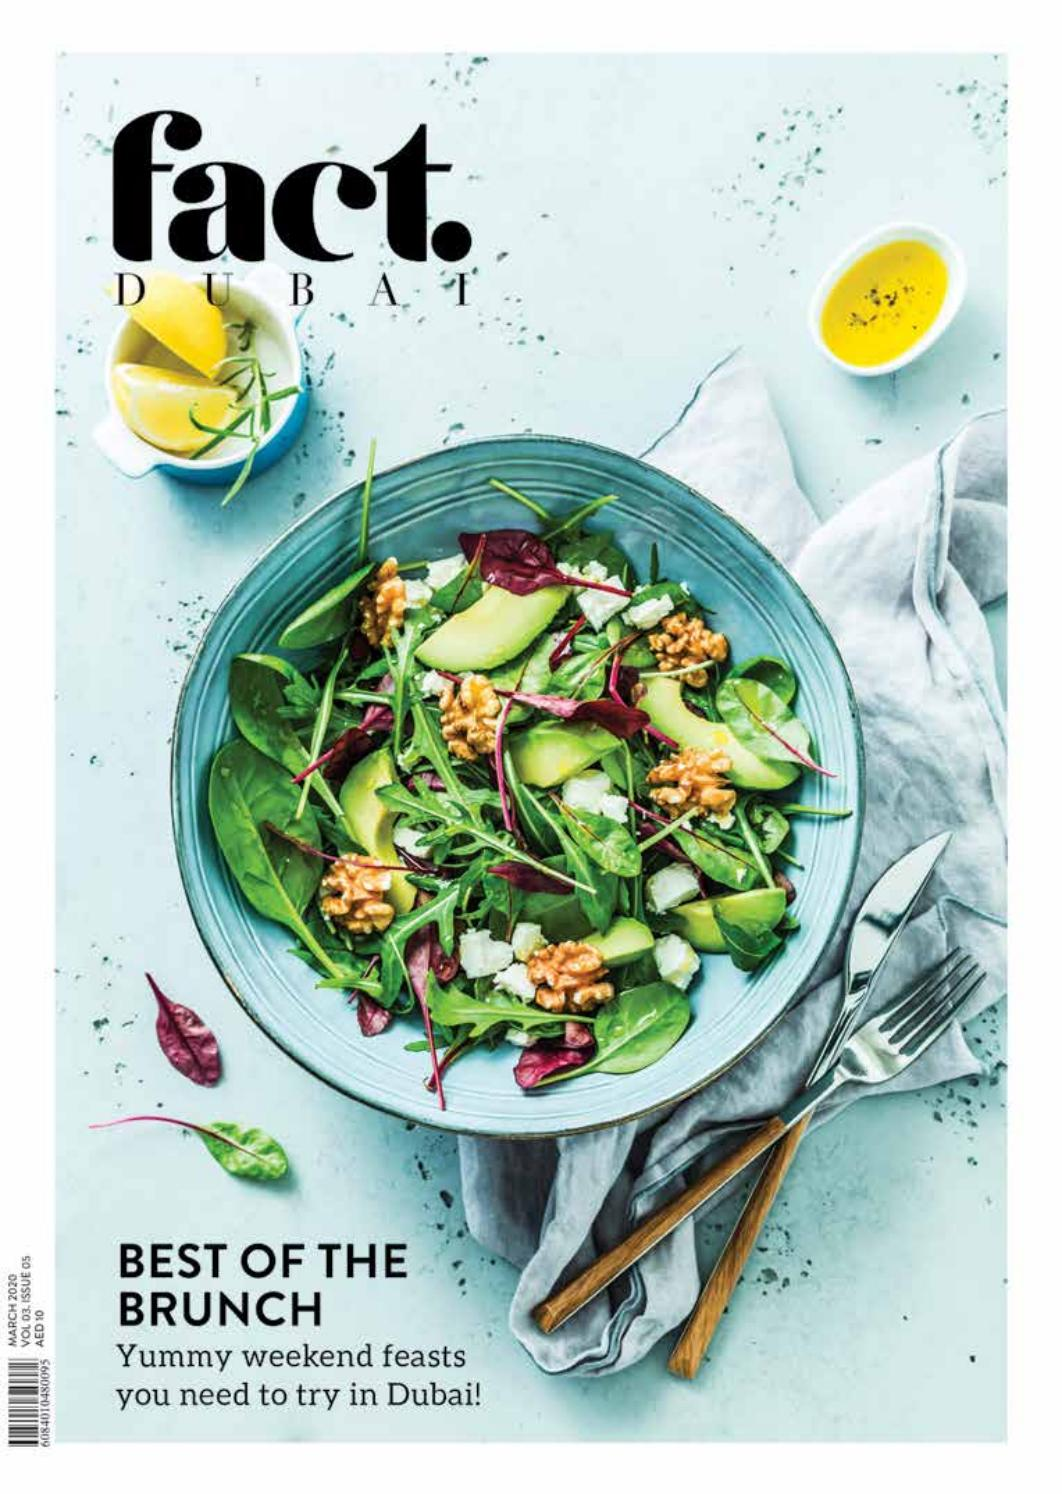 Fact Dubai March 2020 By Fact Magazine Issuu Located in solana beach our talented sushi chefs can prepare any roll, sashimi, special roll, noodles, soups or sauces. fact dubai march 2020 by fact magazine